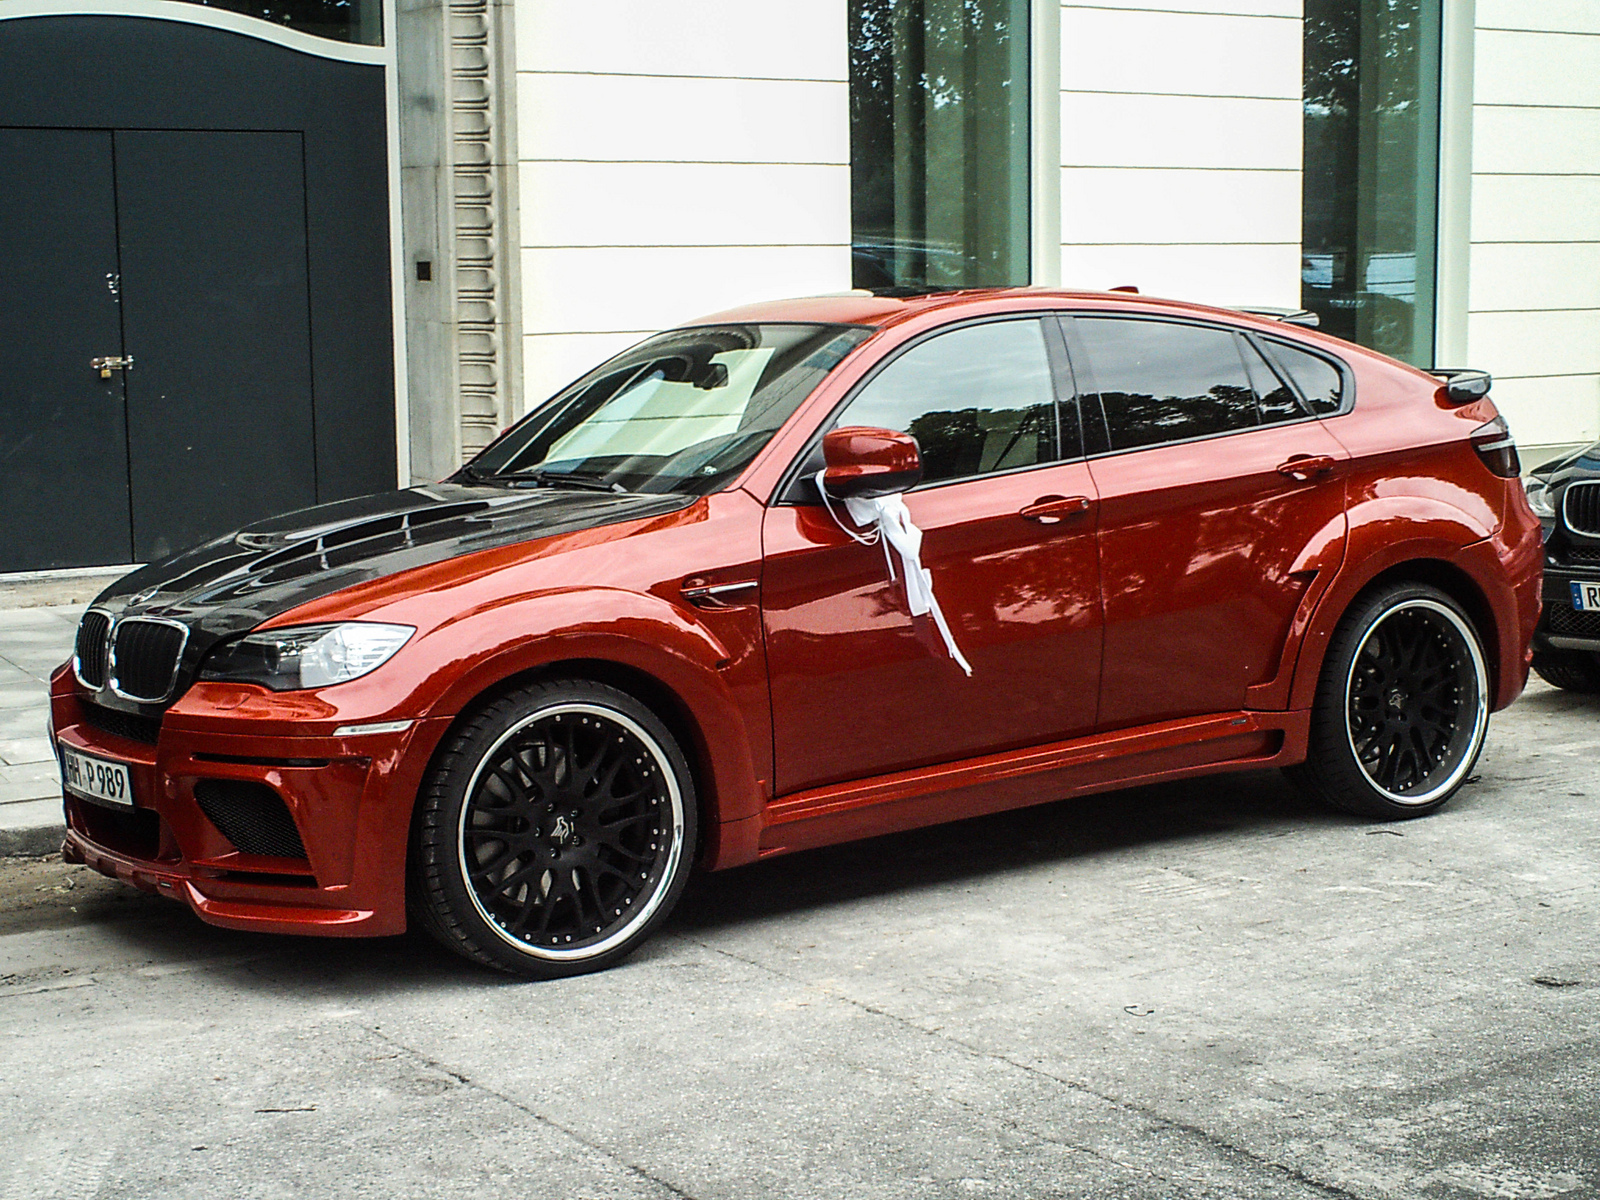 Hamann Tuning S Bmw X6 M Caught On Video Bmw Car Tuning